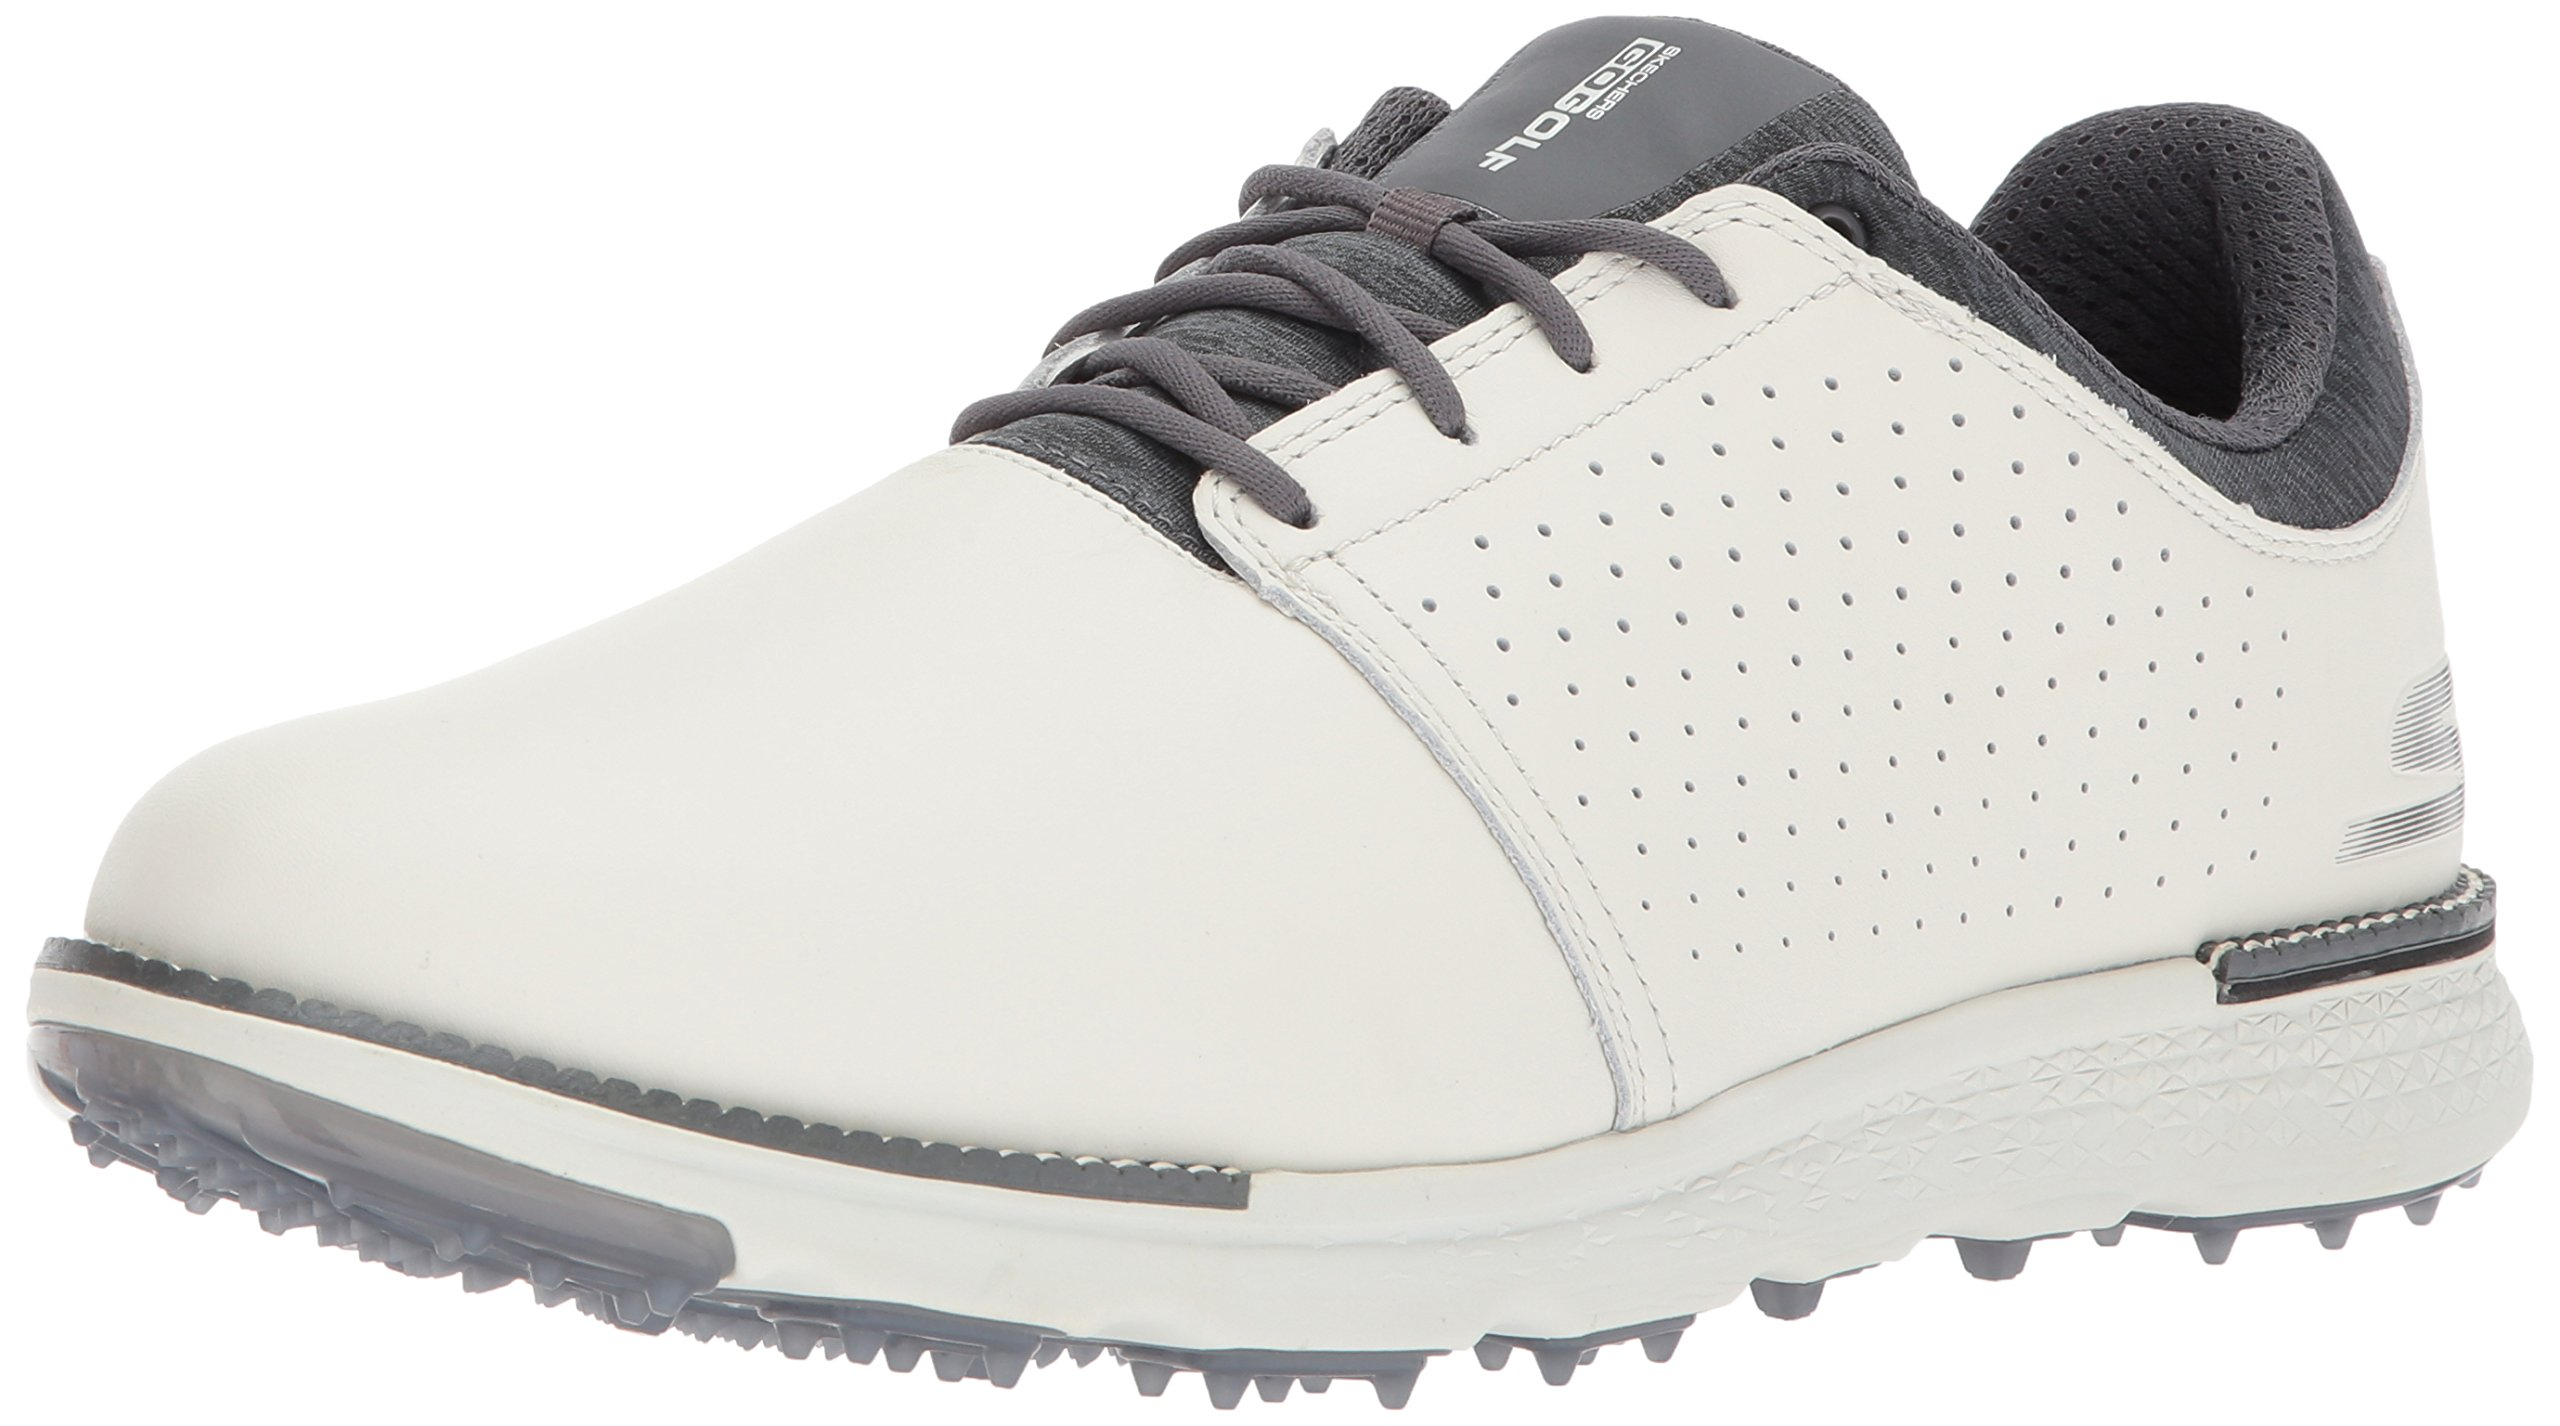 Skechers Performance Men's Go Golf Elite 3 Approach Lx Golf Shoe,Natural/Gray,13 M US by Skechers